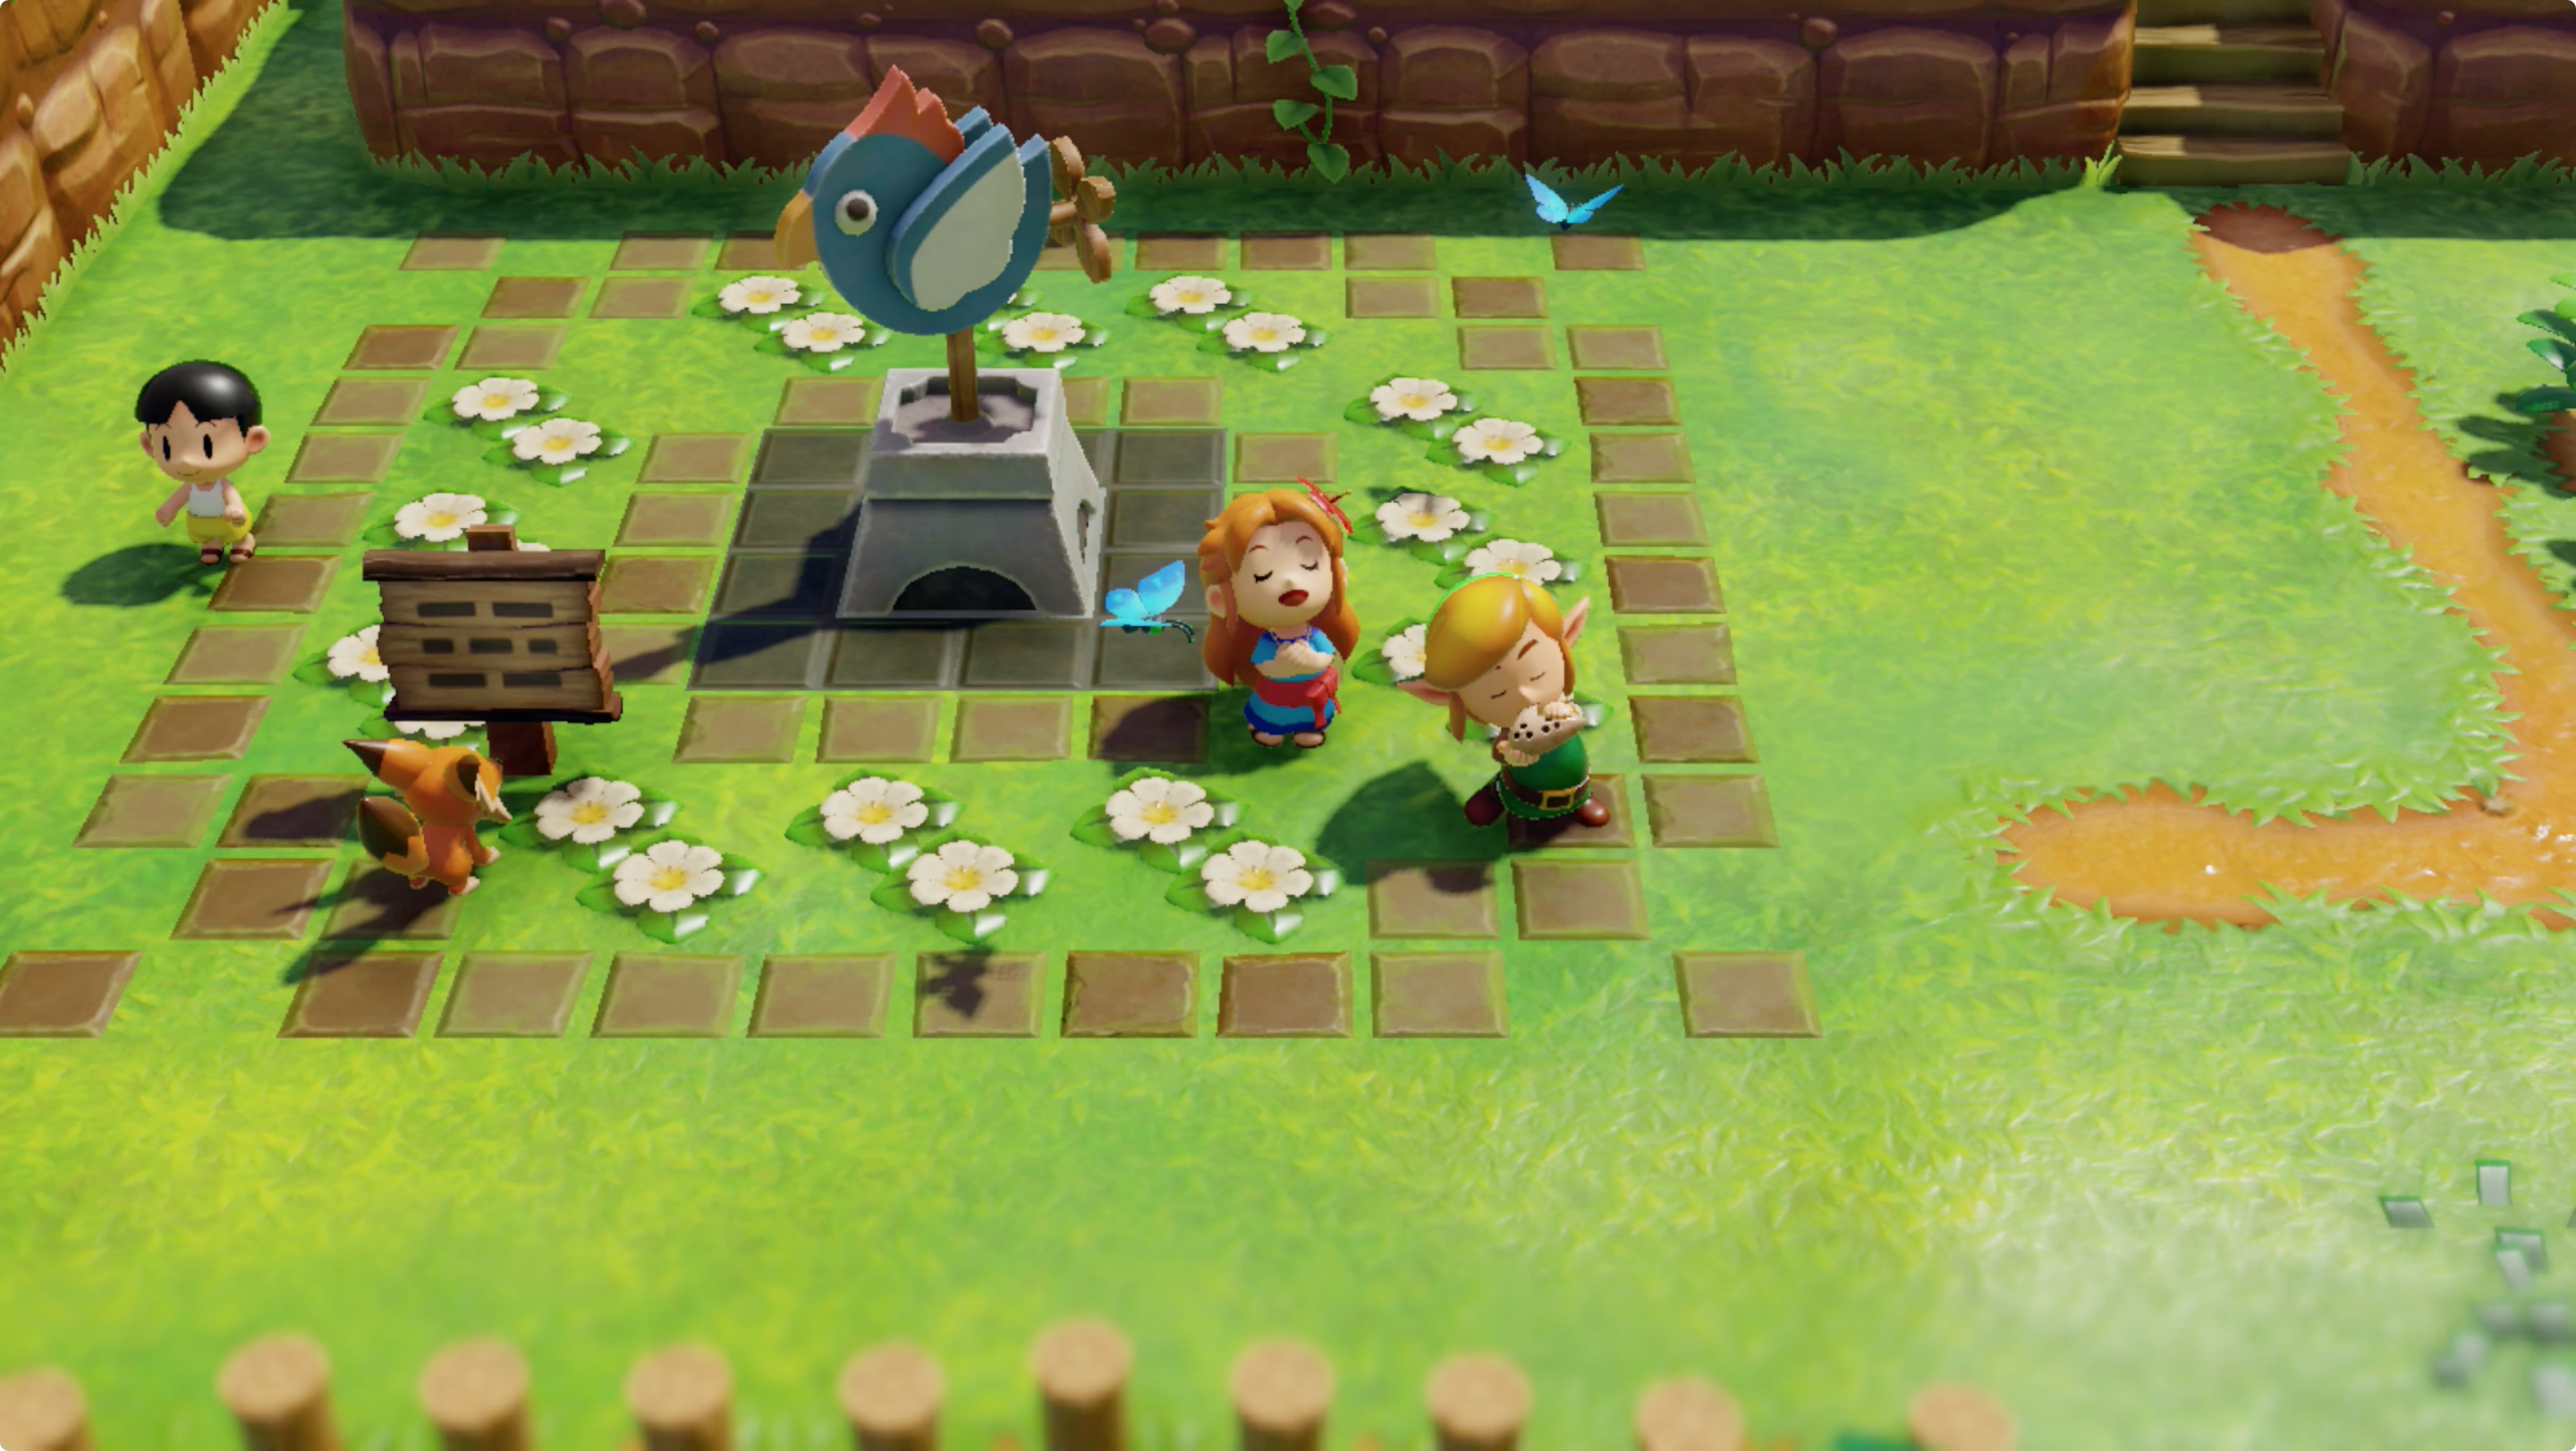 How to find Link's Ocarina in Link's Awakening